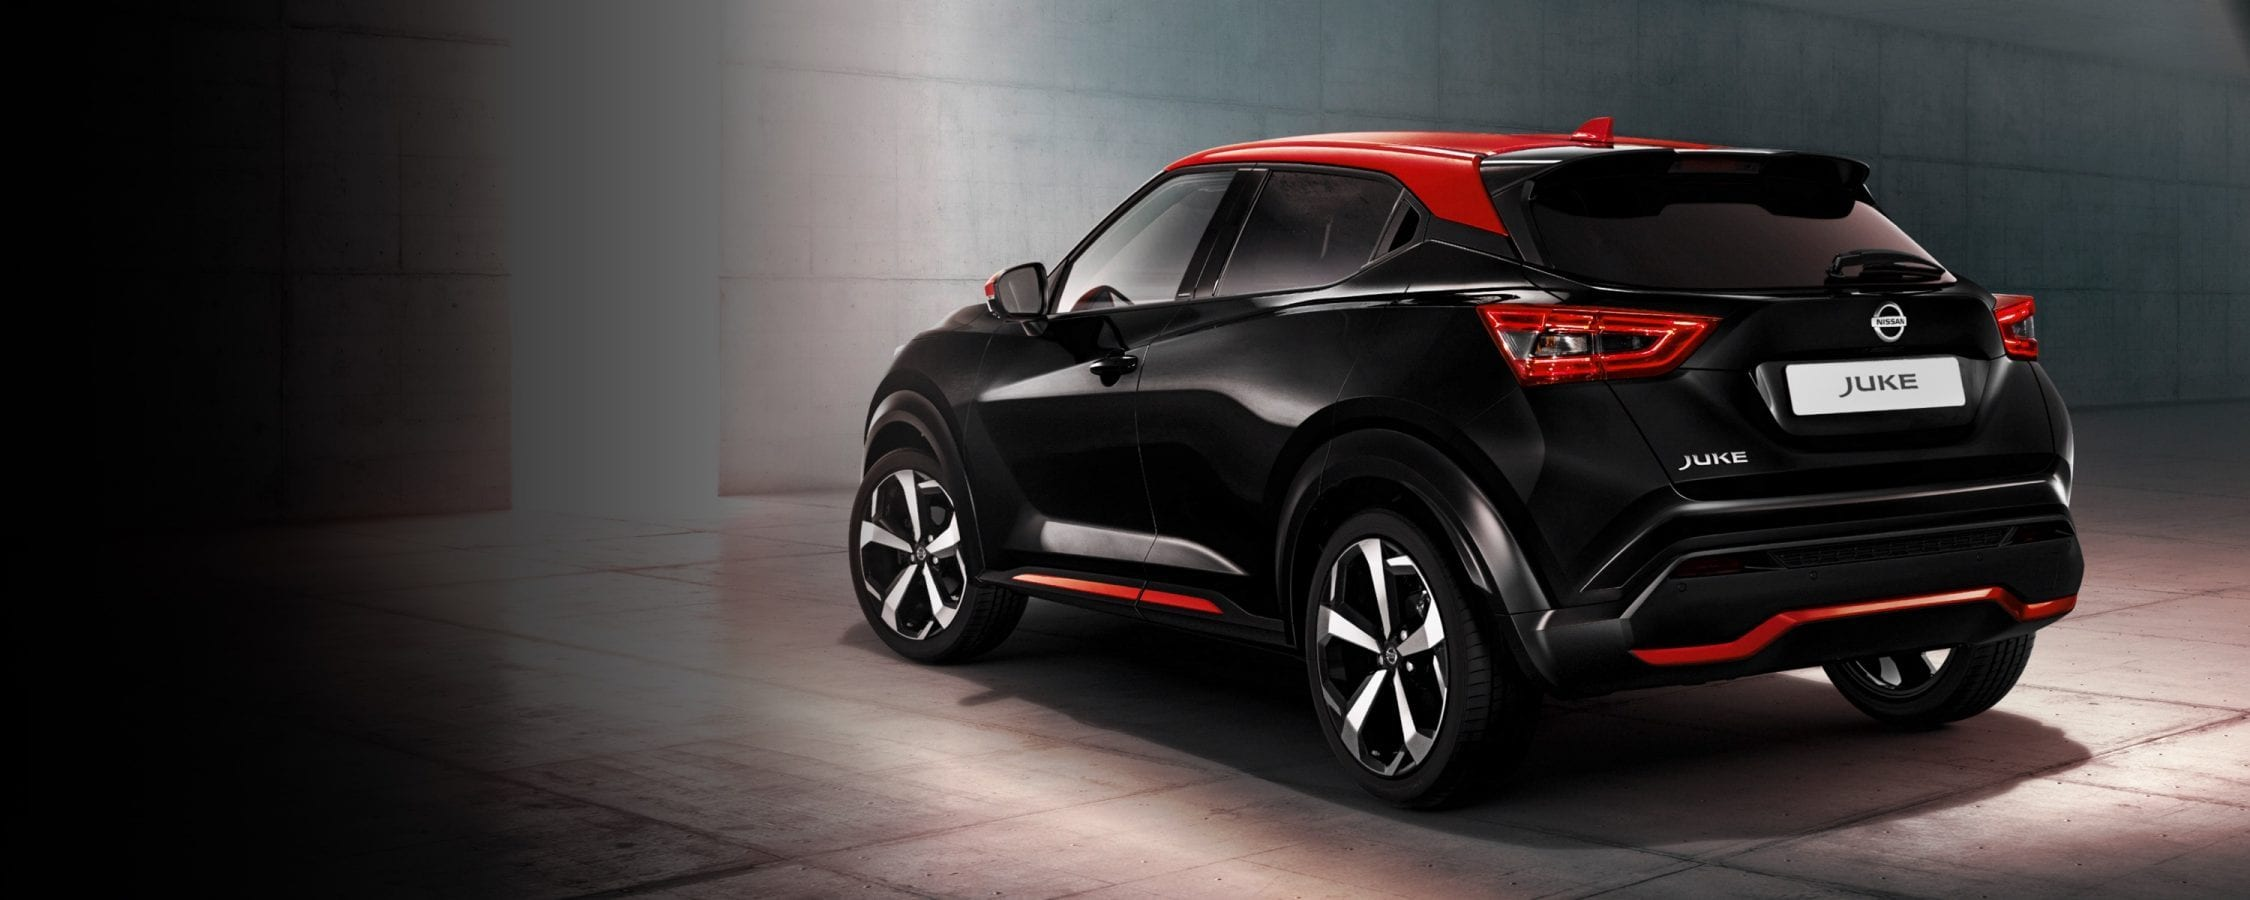 Review: Armagh I size up the New Nissan Juke 2019 – Armagh I